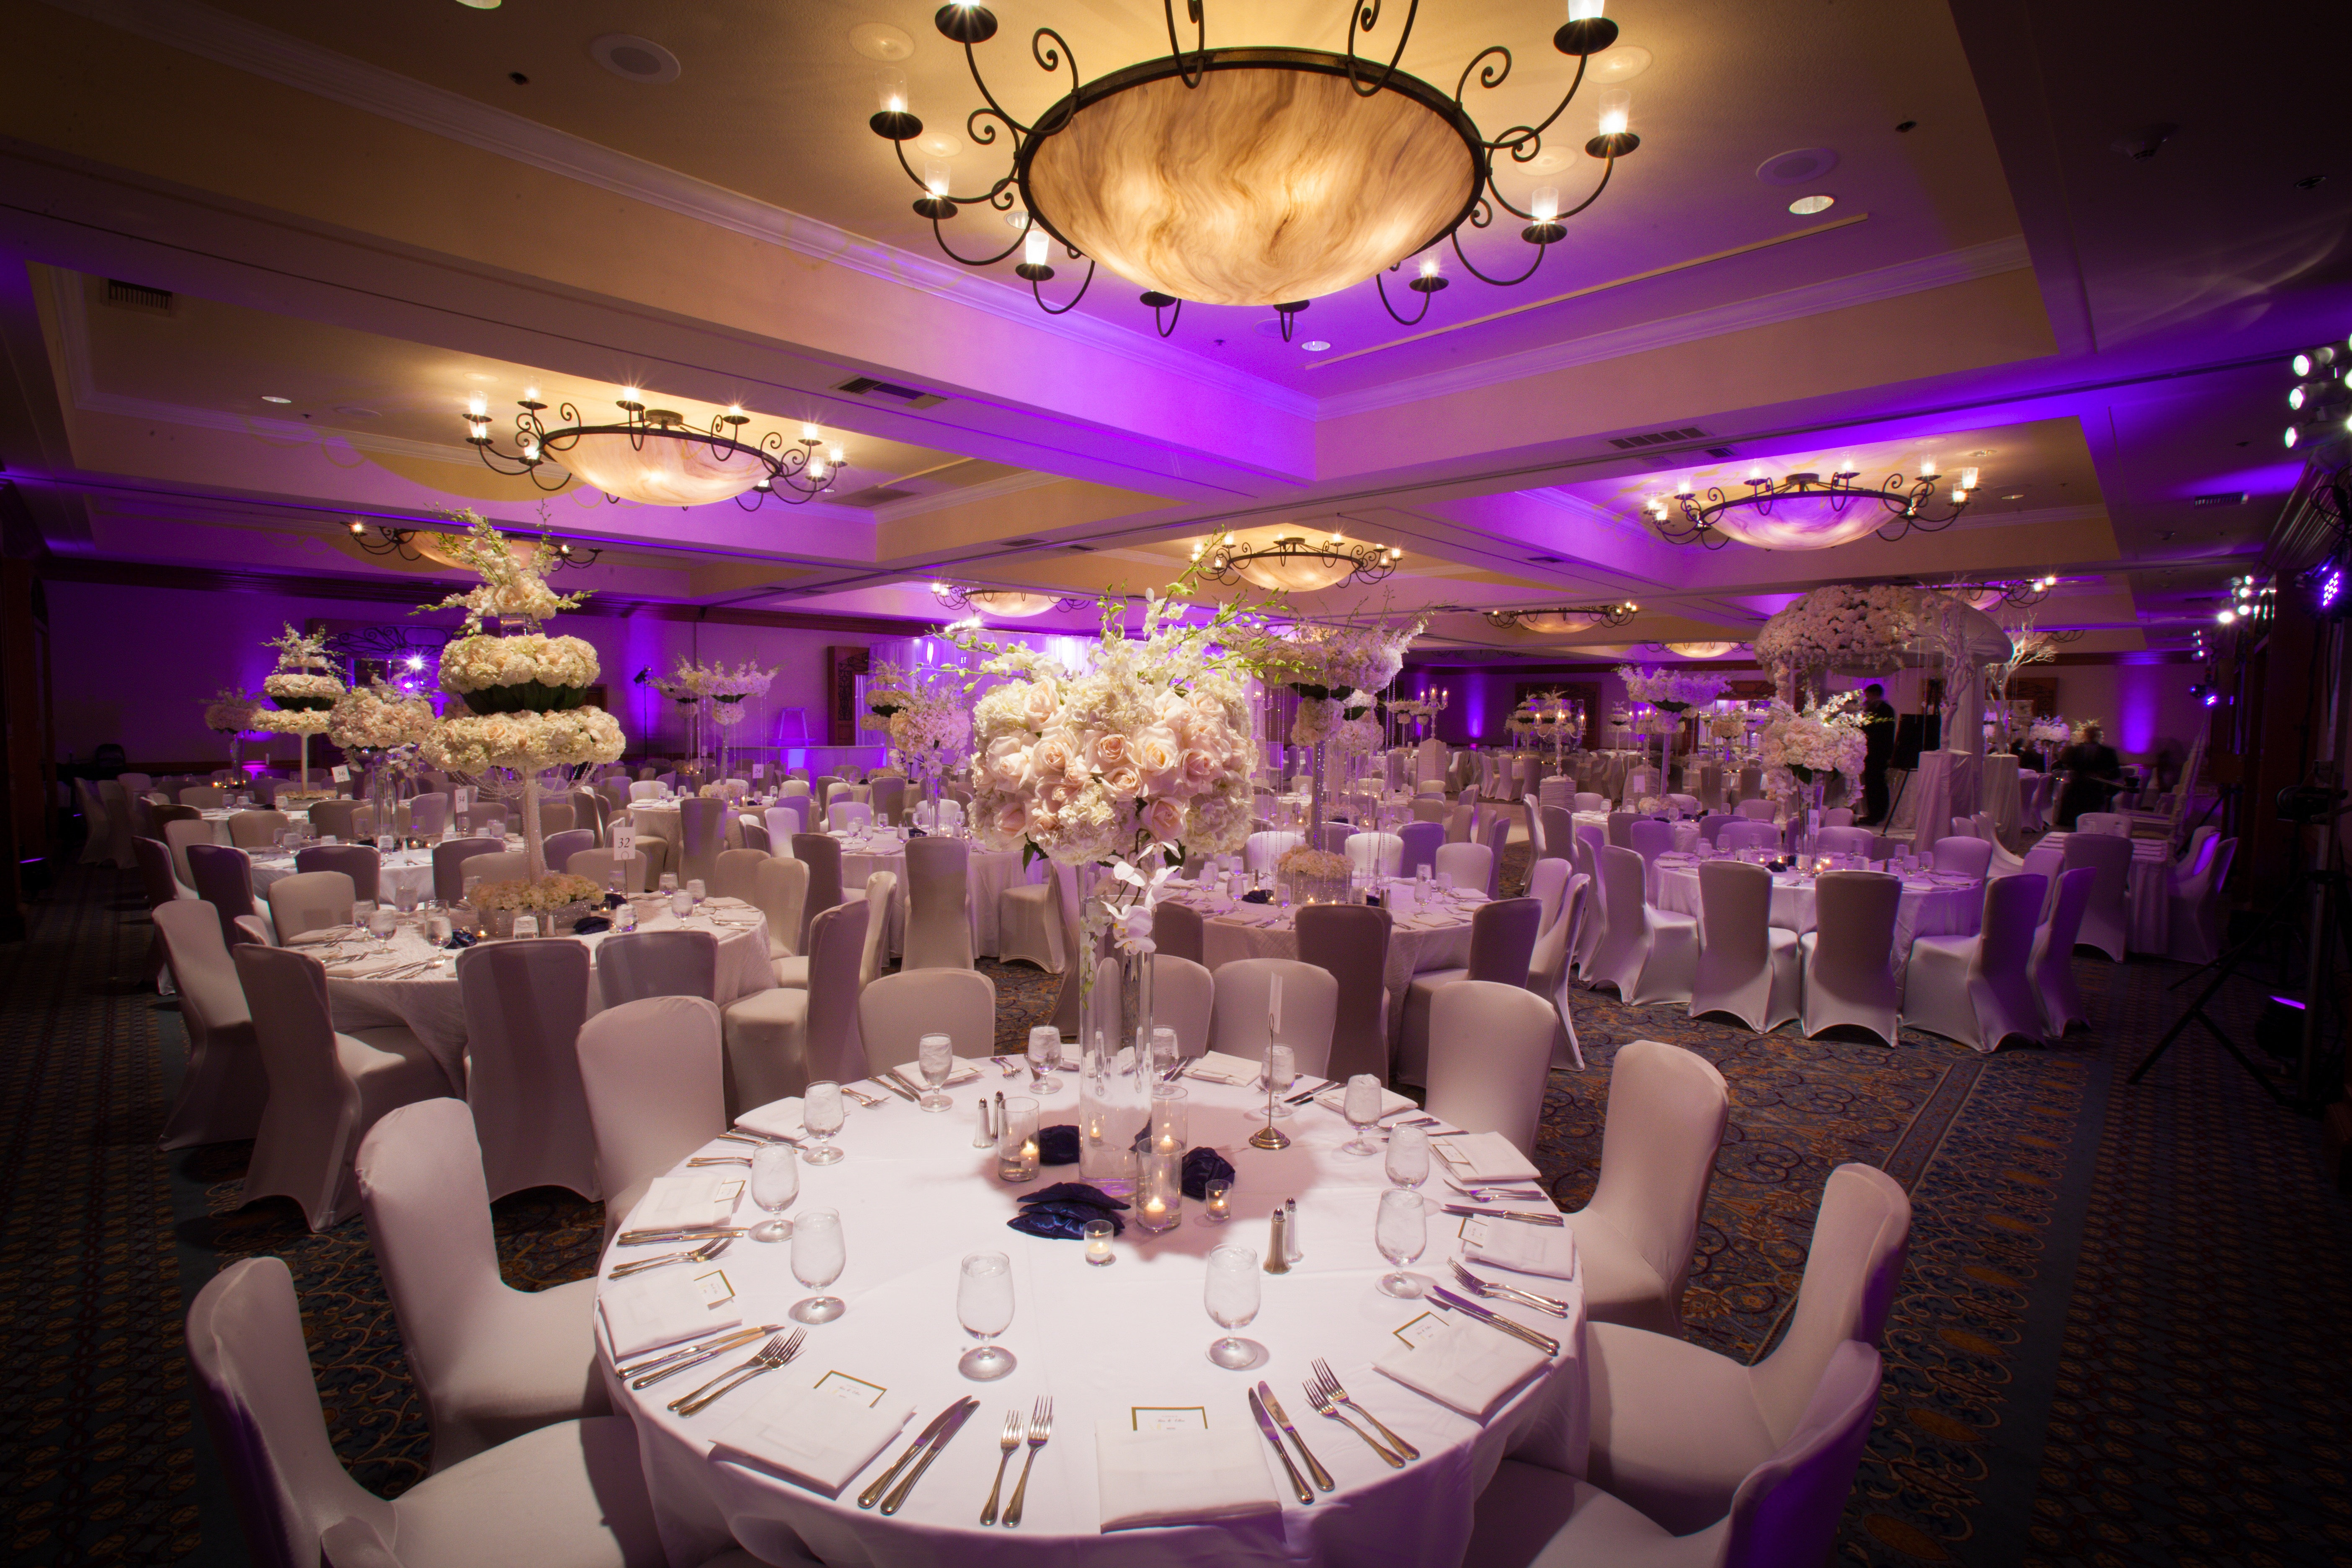 Wedding Catering In Los Angeles Kosher Catering In Los Angeles Truck